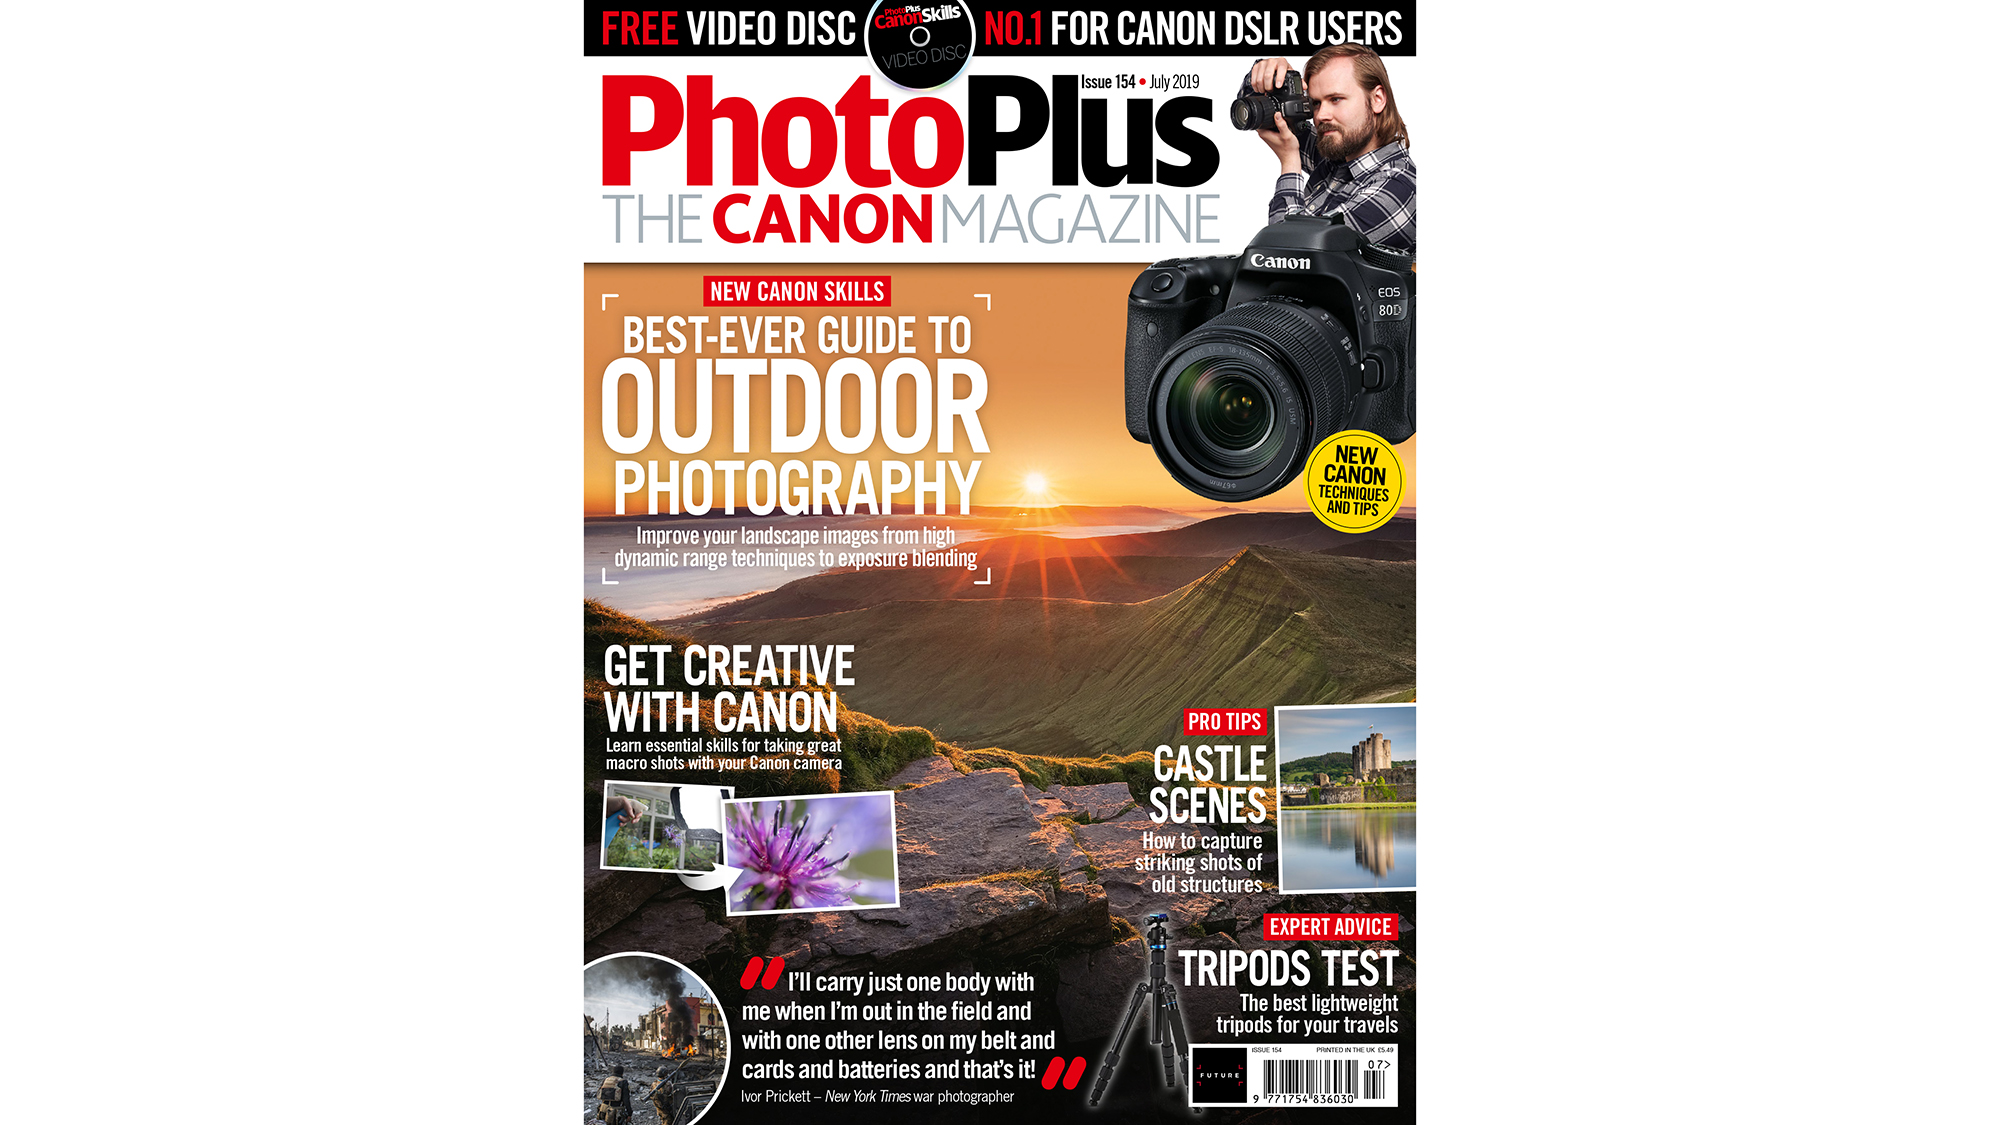 Amazing new issue no.154 of PhotoPlus: The Canon Magazine now on sale! | Digital Camera World